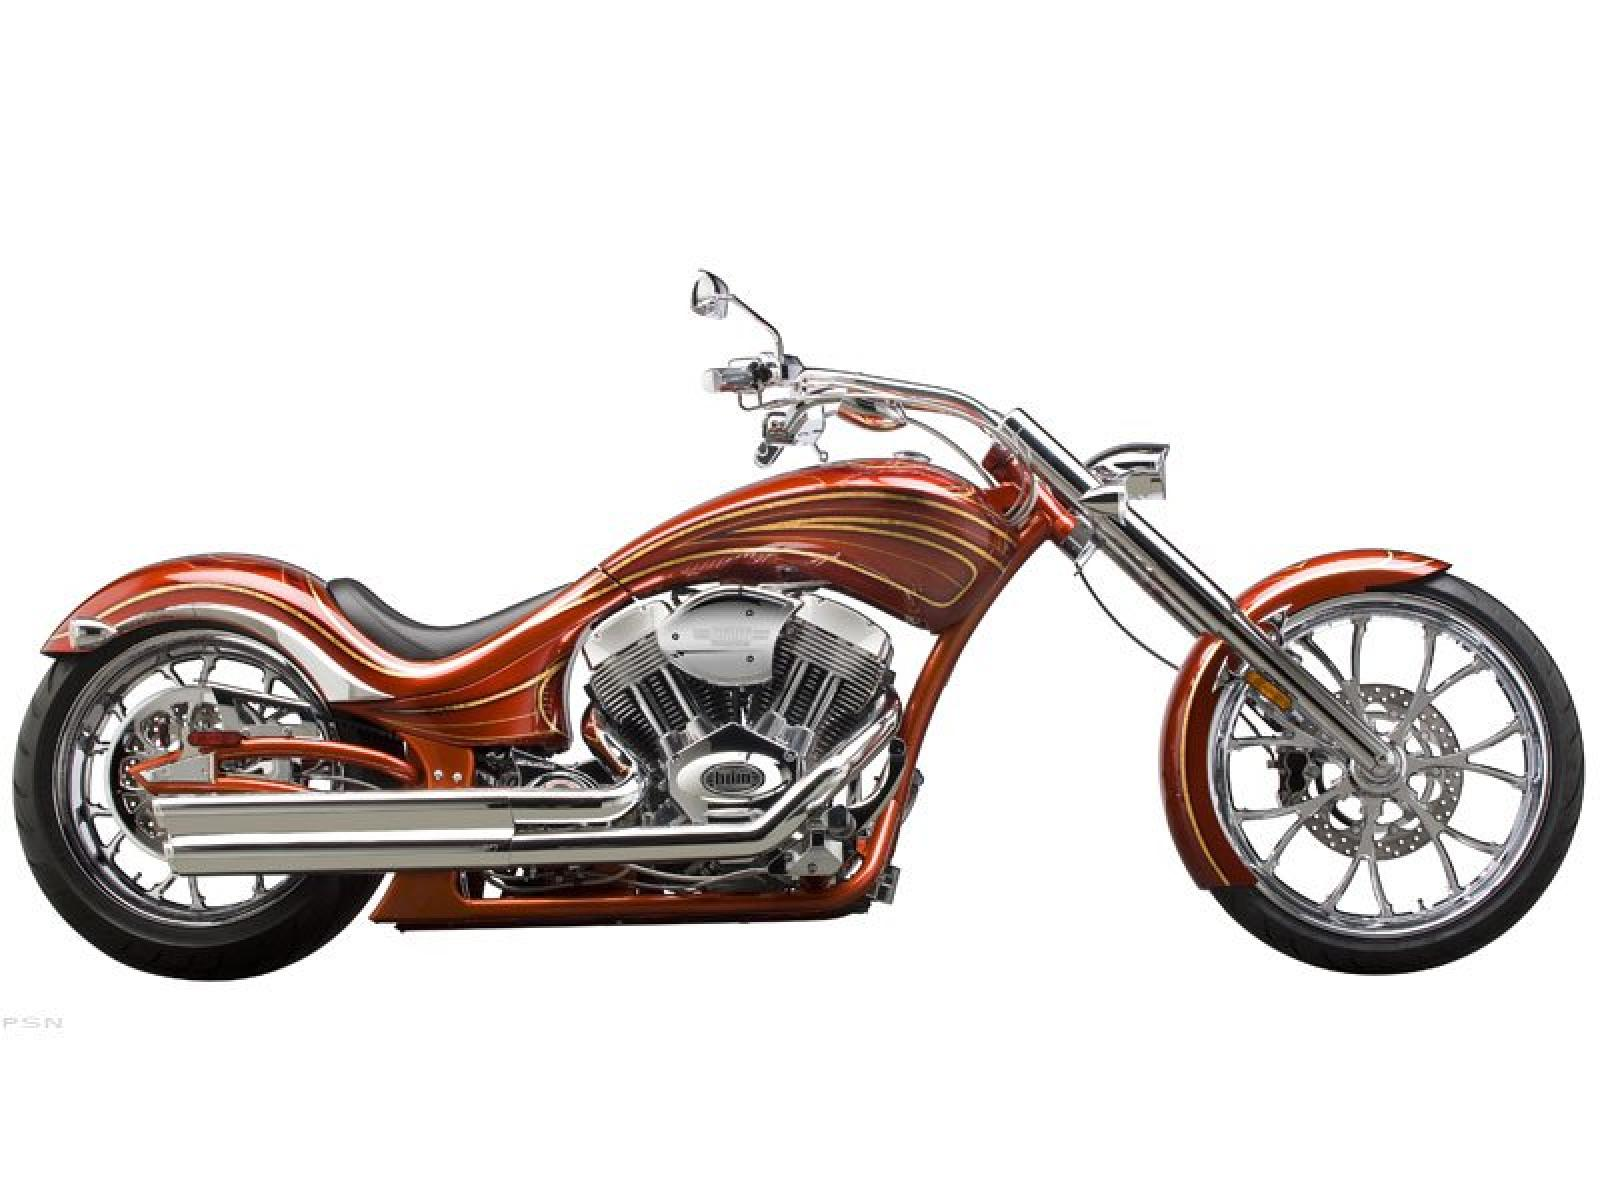 Big Bear Choppers Merc Softail 100 Smooth Carb 2010 images #63766